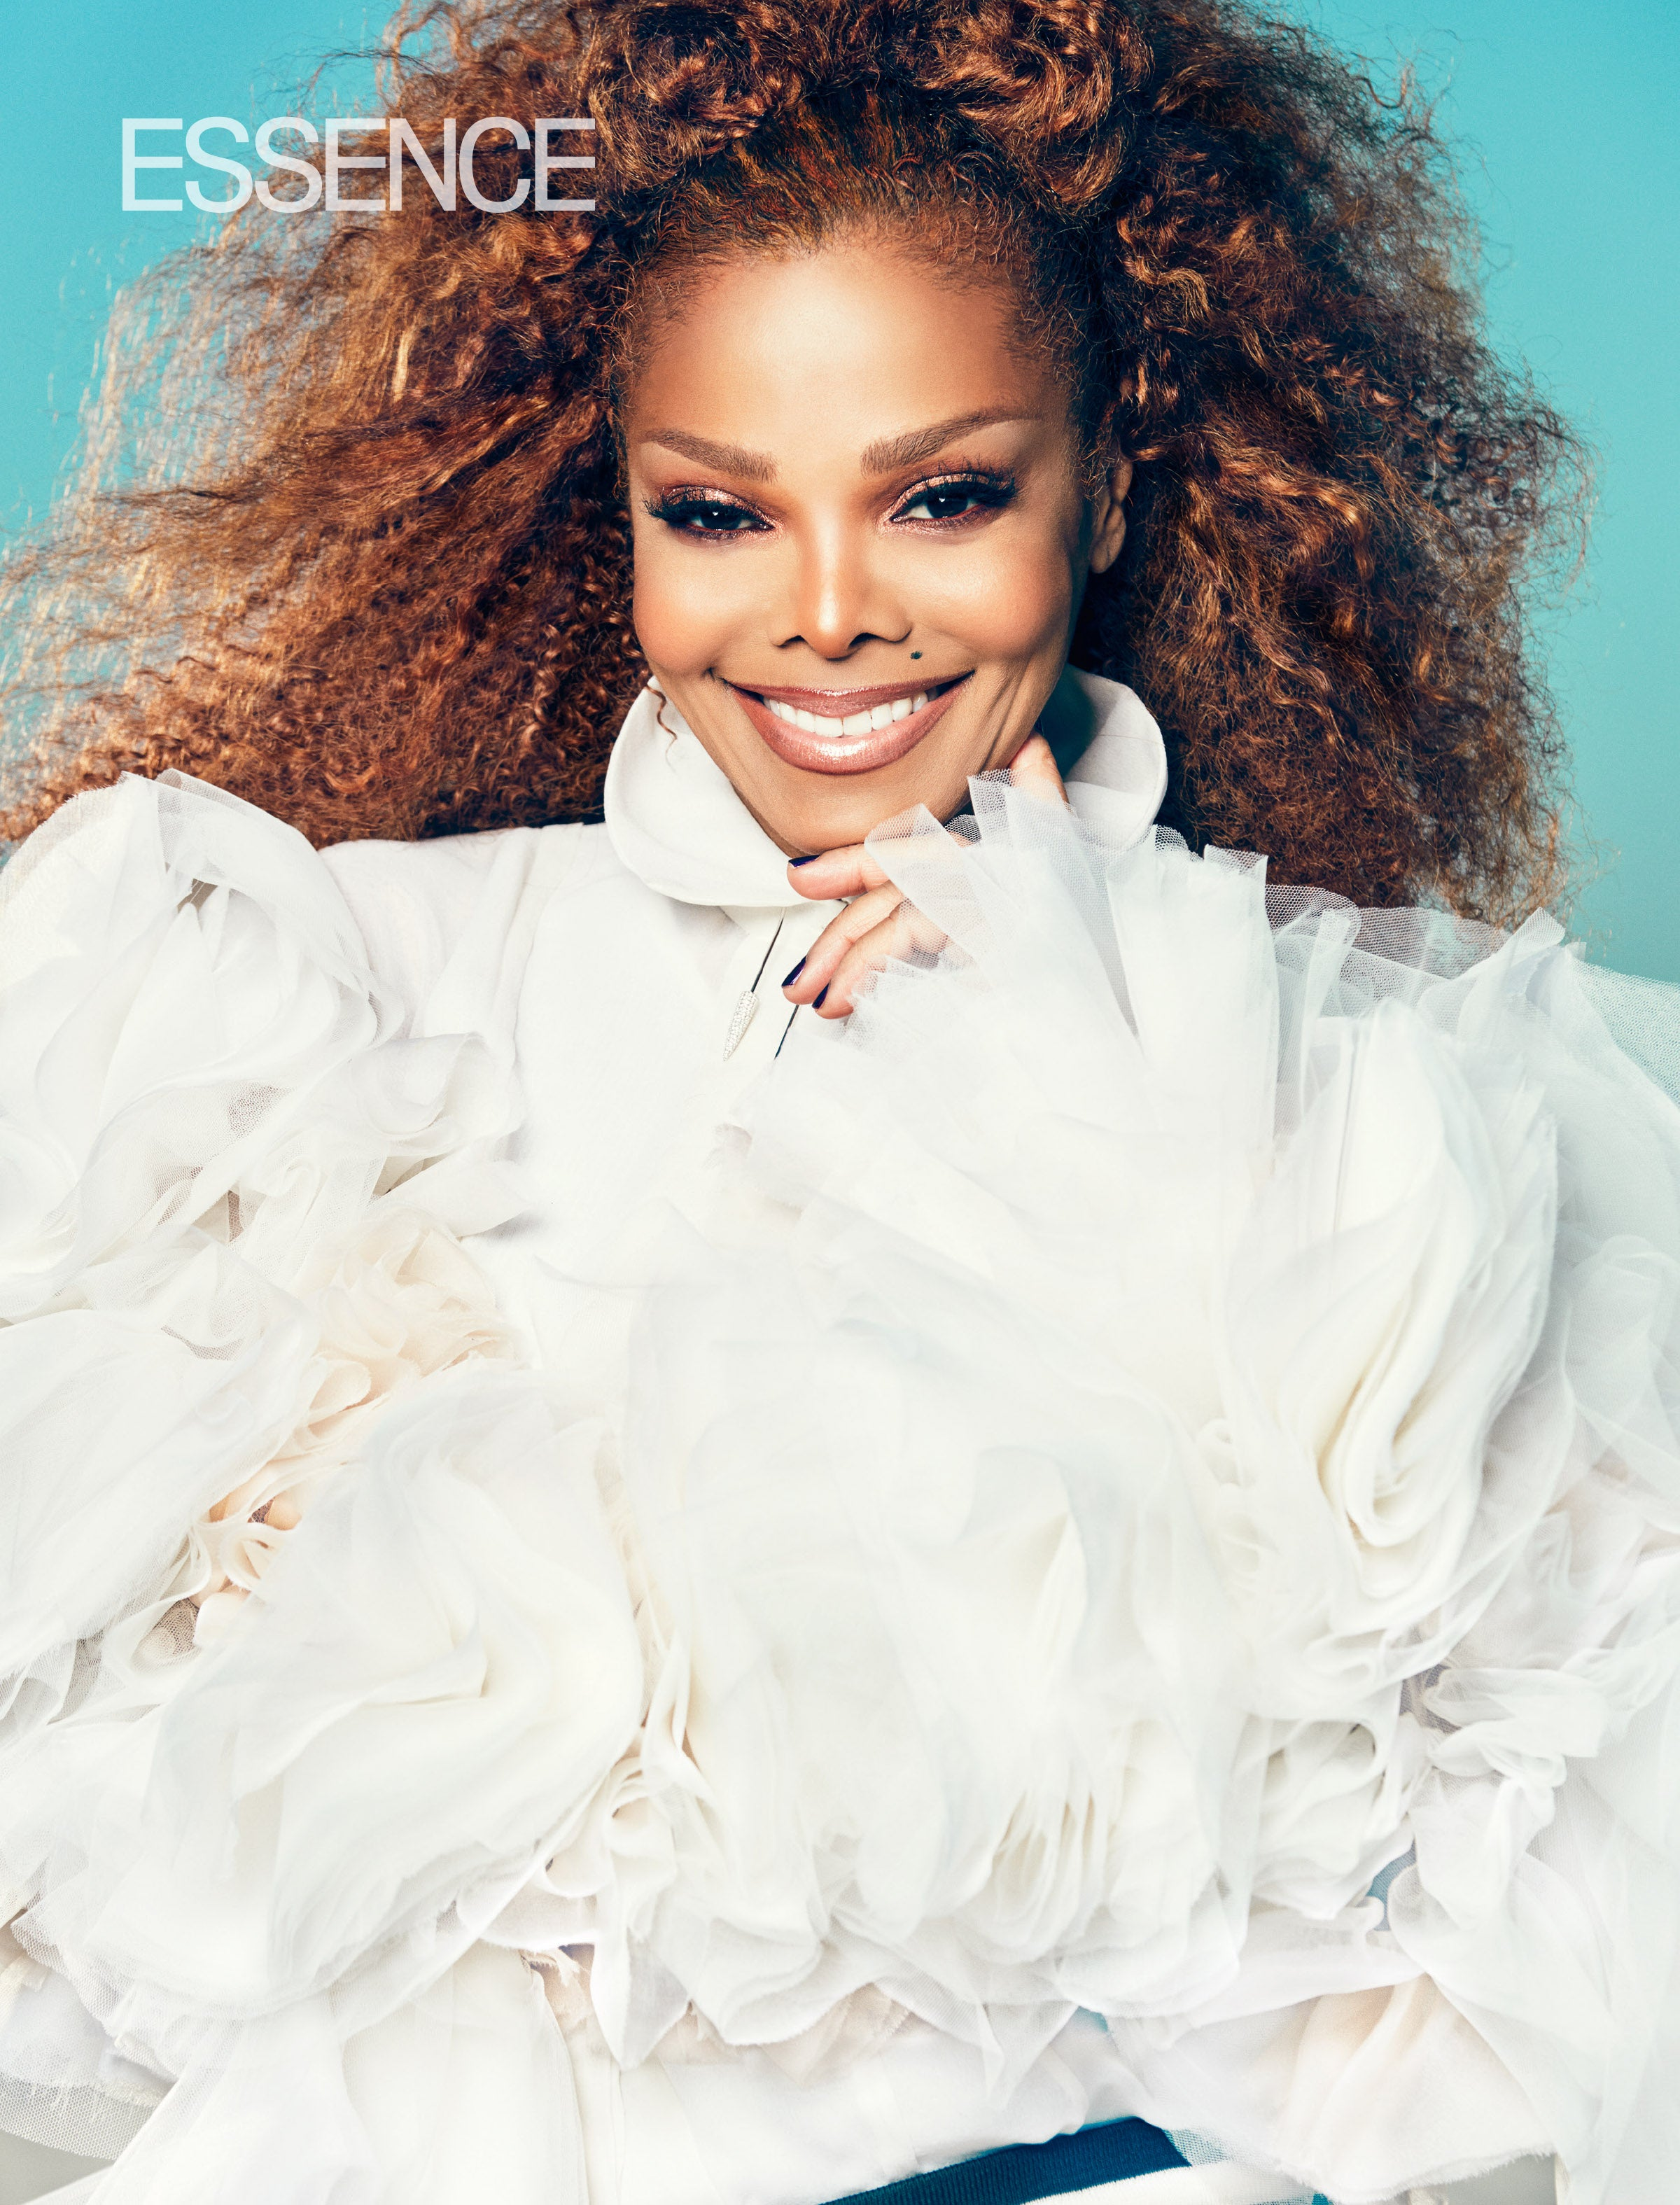 Janet Jackson Cover Story July 2018 - Essence